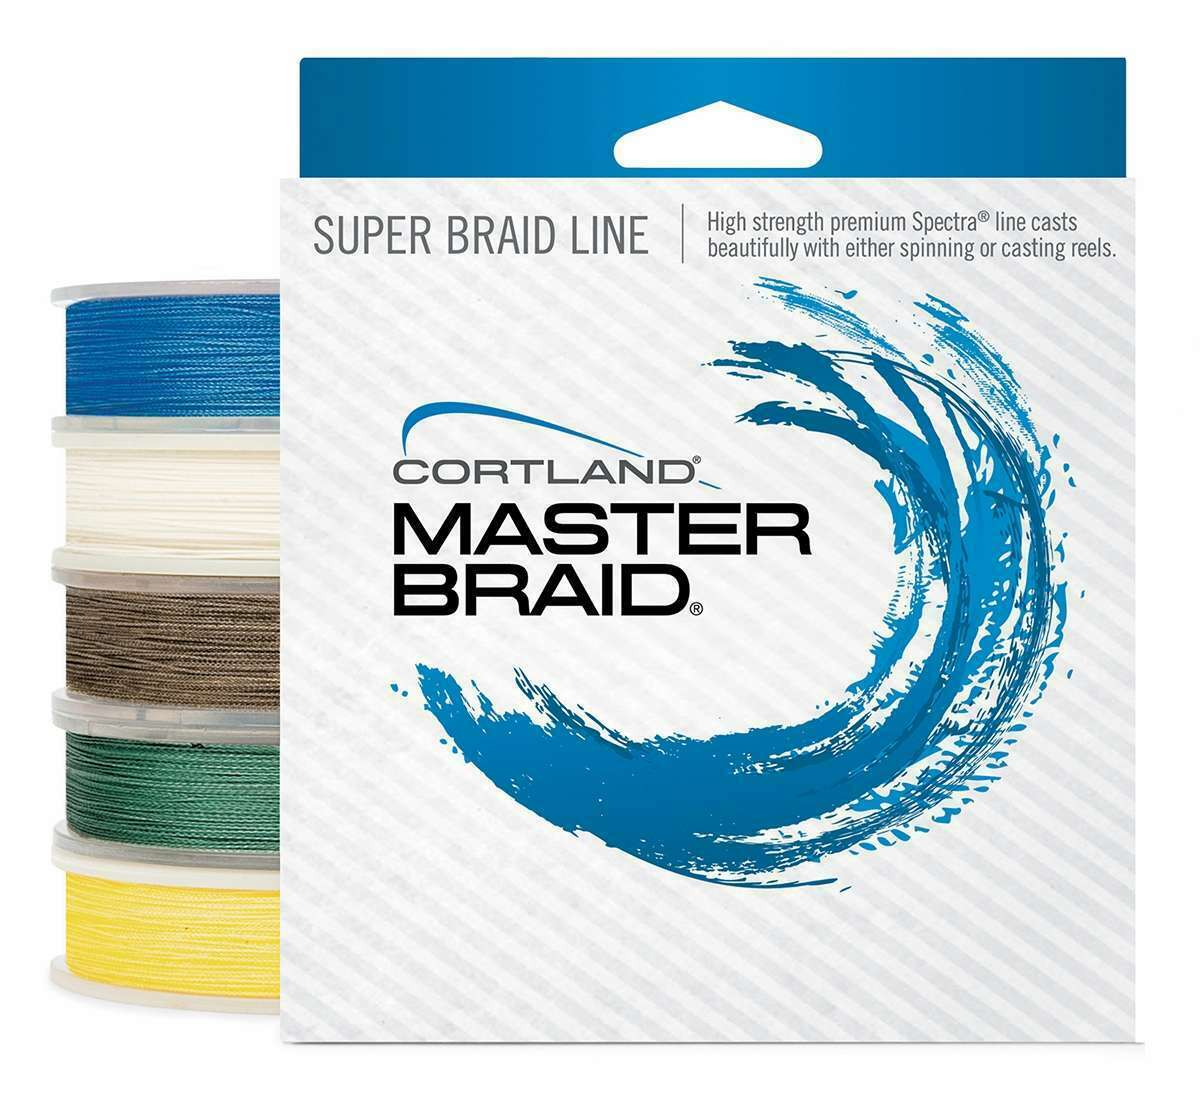 Cortland Master Braid 250 Yard Spool  - 160934  test 65lb.   color  Bronze  with 60% off discount